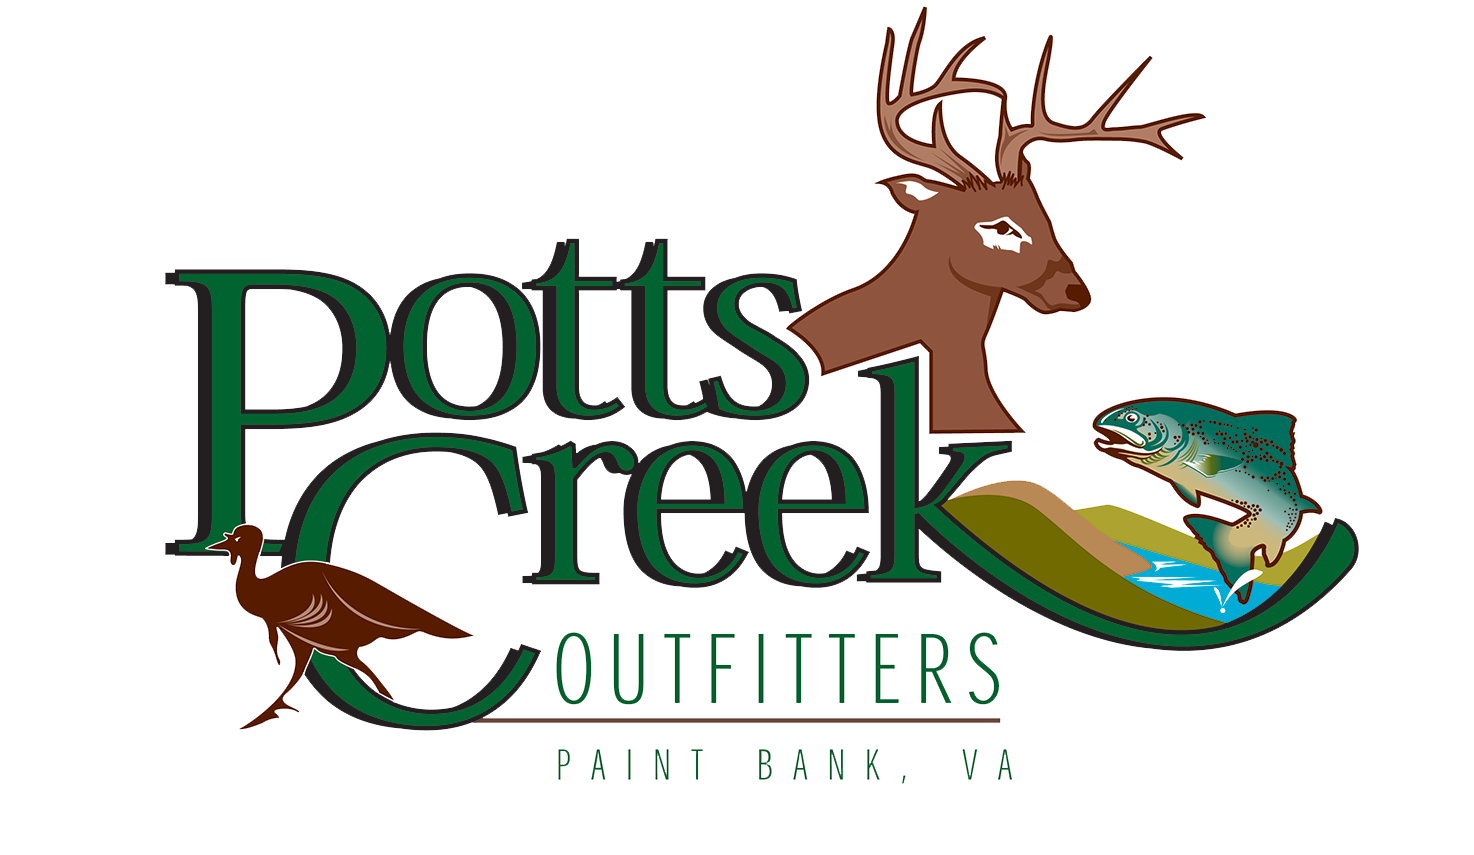 Potts_Creek-logo.png